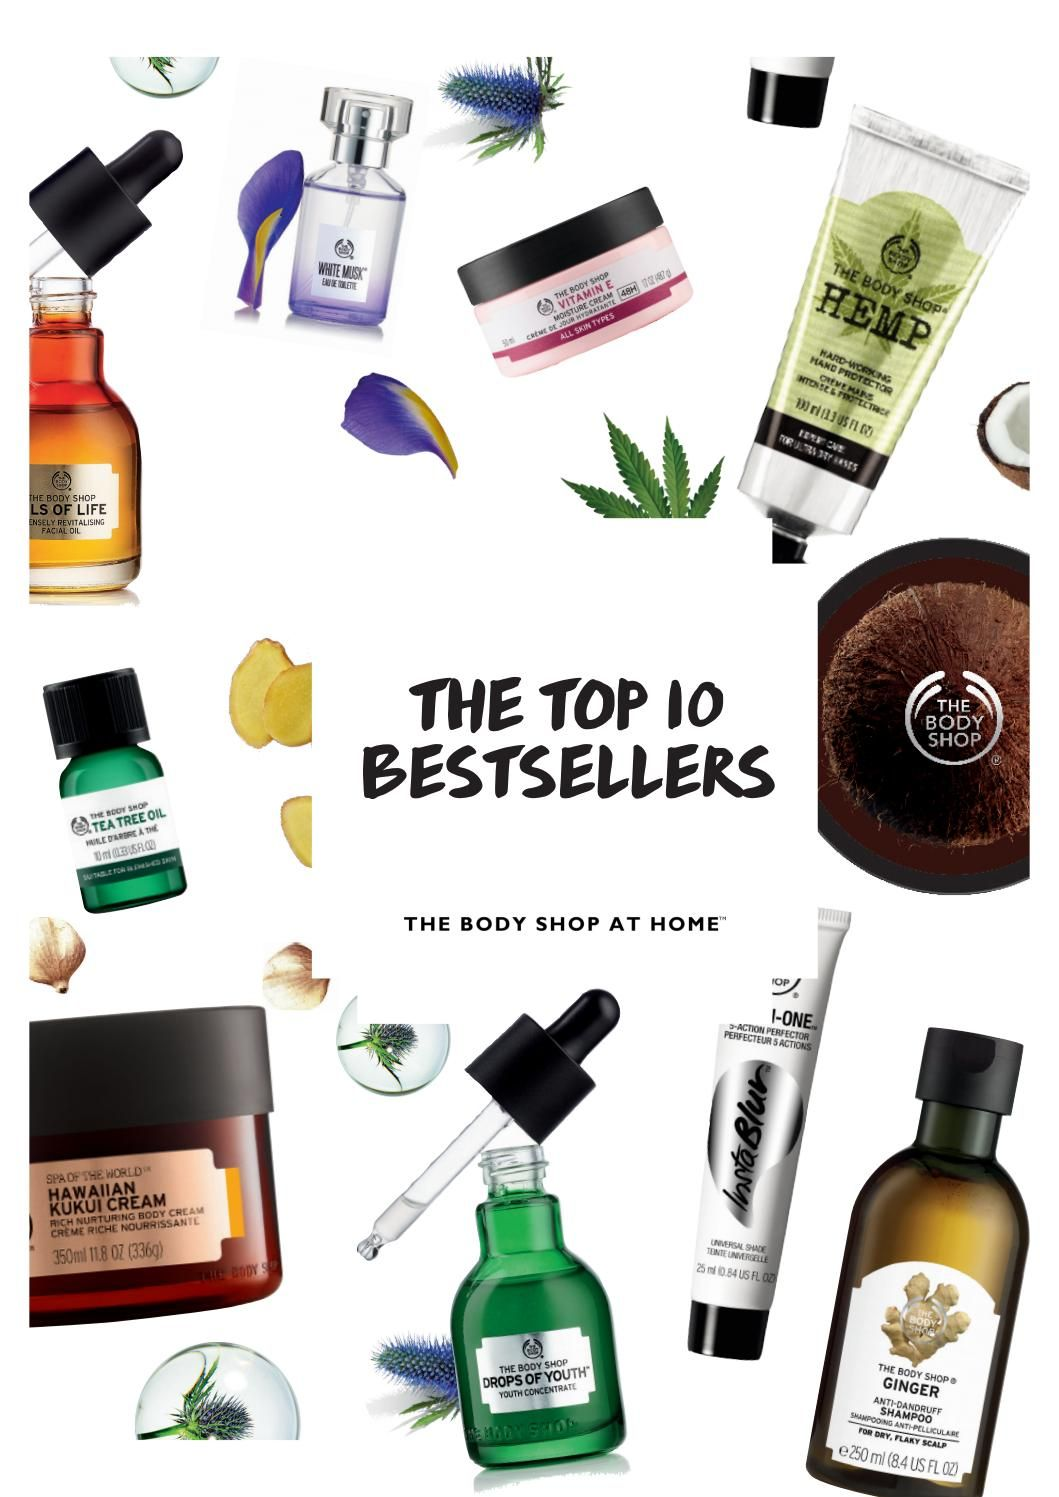 Top Ten Bestsellers Guide Body Shop At Home Best Body Shop Products The Body Shop Logo